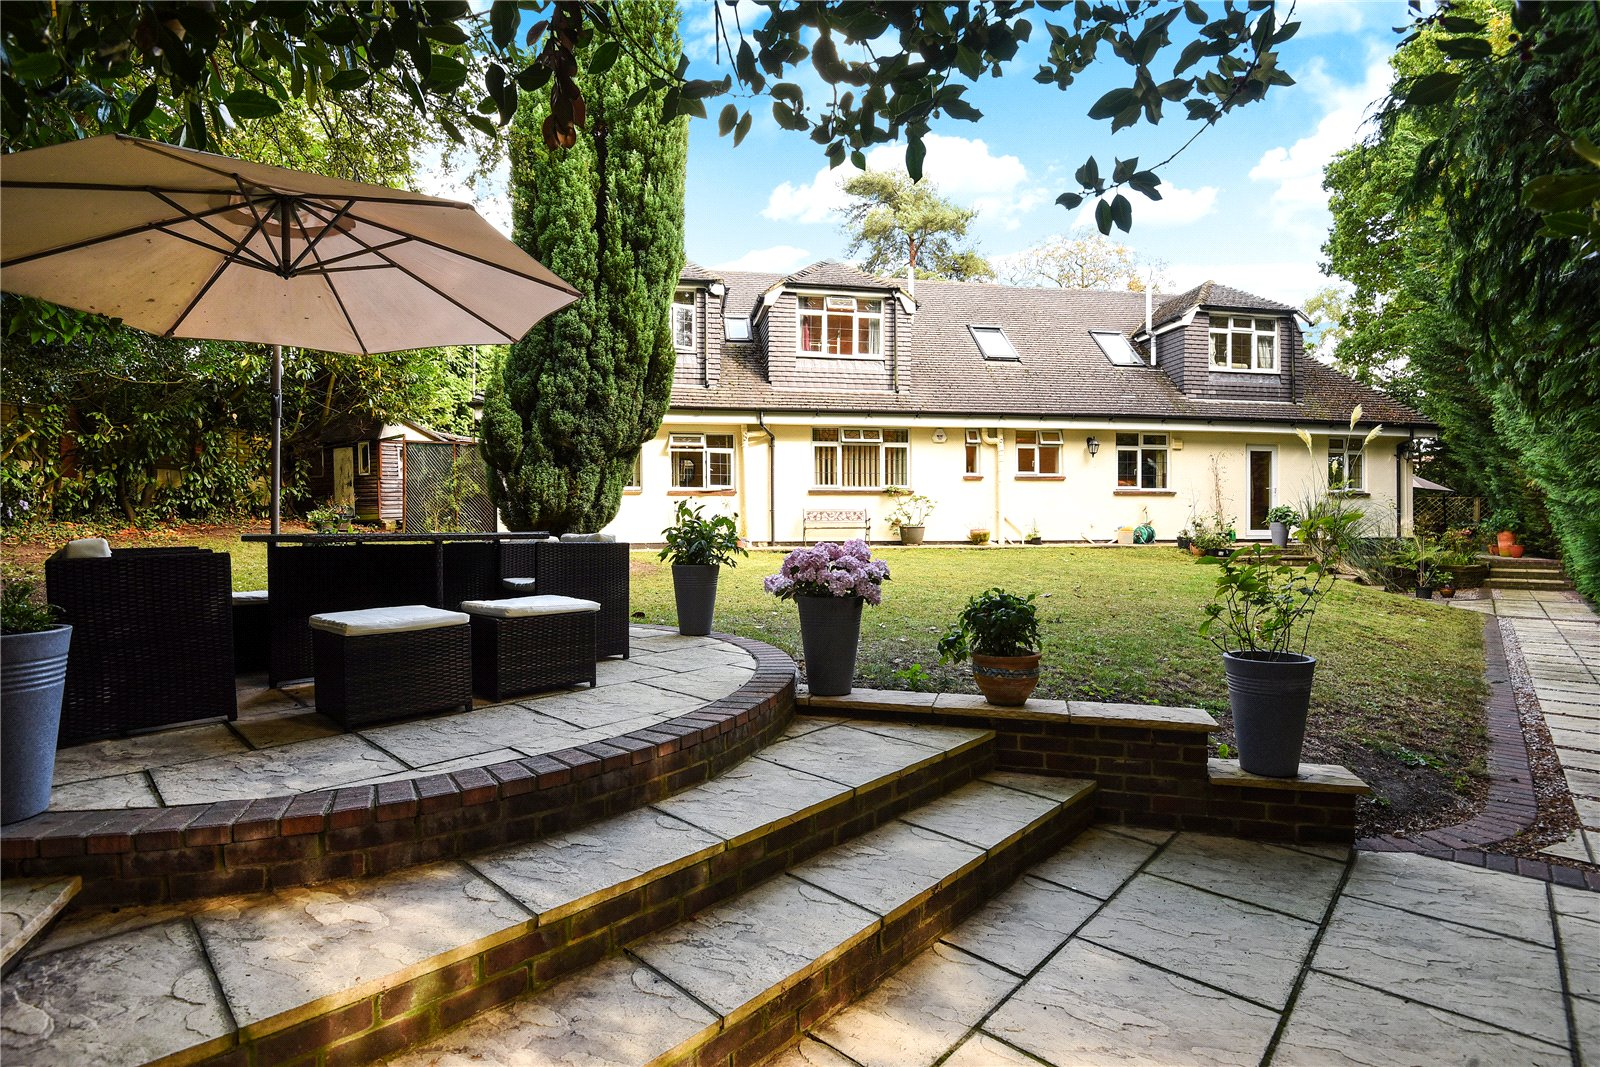 6 Bedrooms Detached House for sale in Gorse Hill Lane, Virginia Water, Surrey, GU25